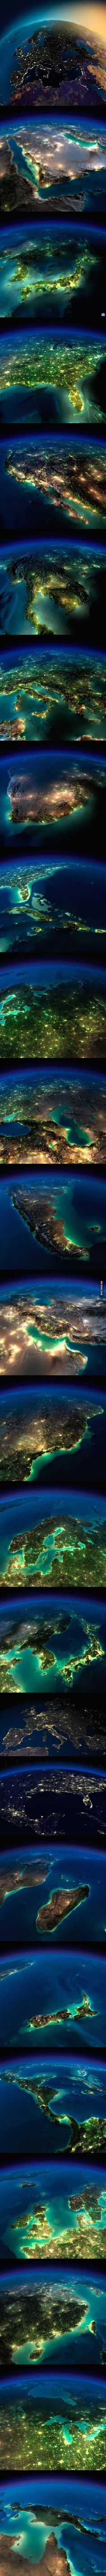 Earth at Night http://www.thevividworld.com/earth-at-night/